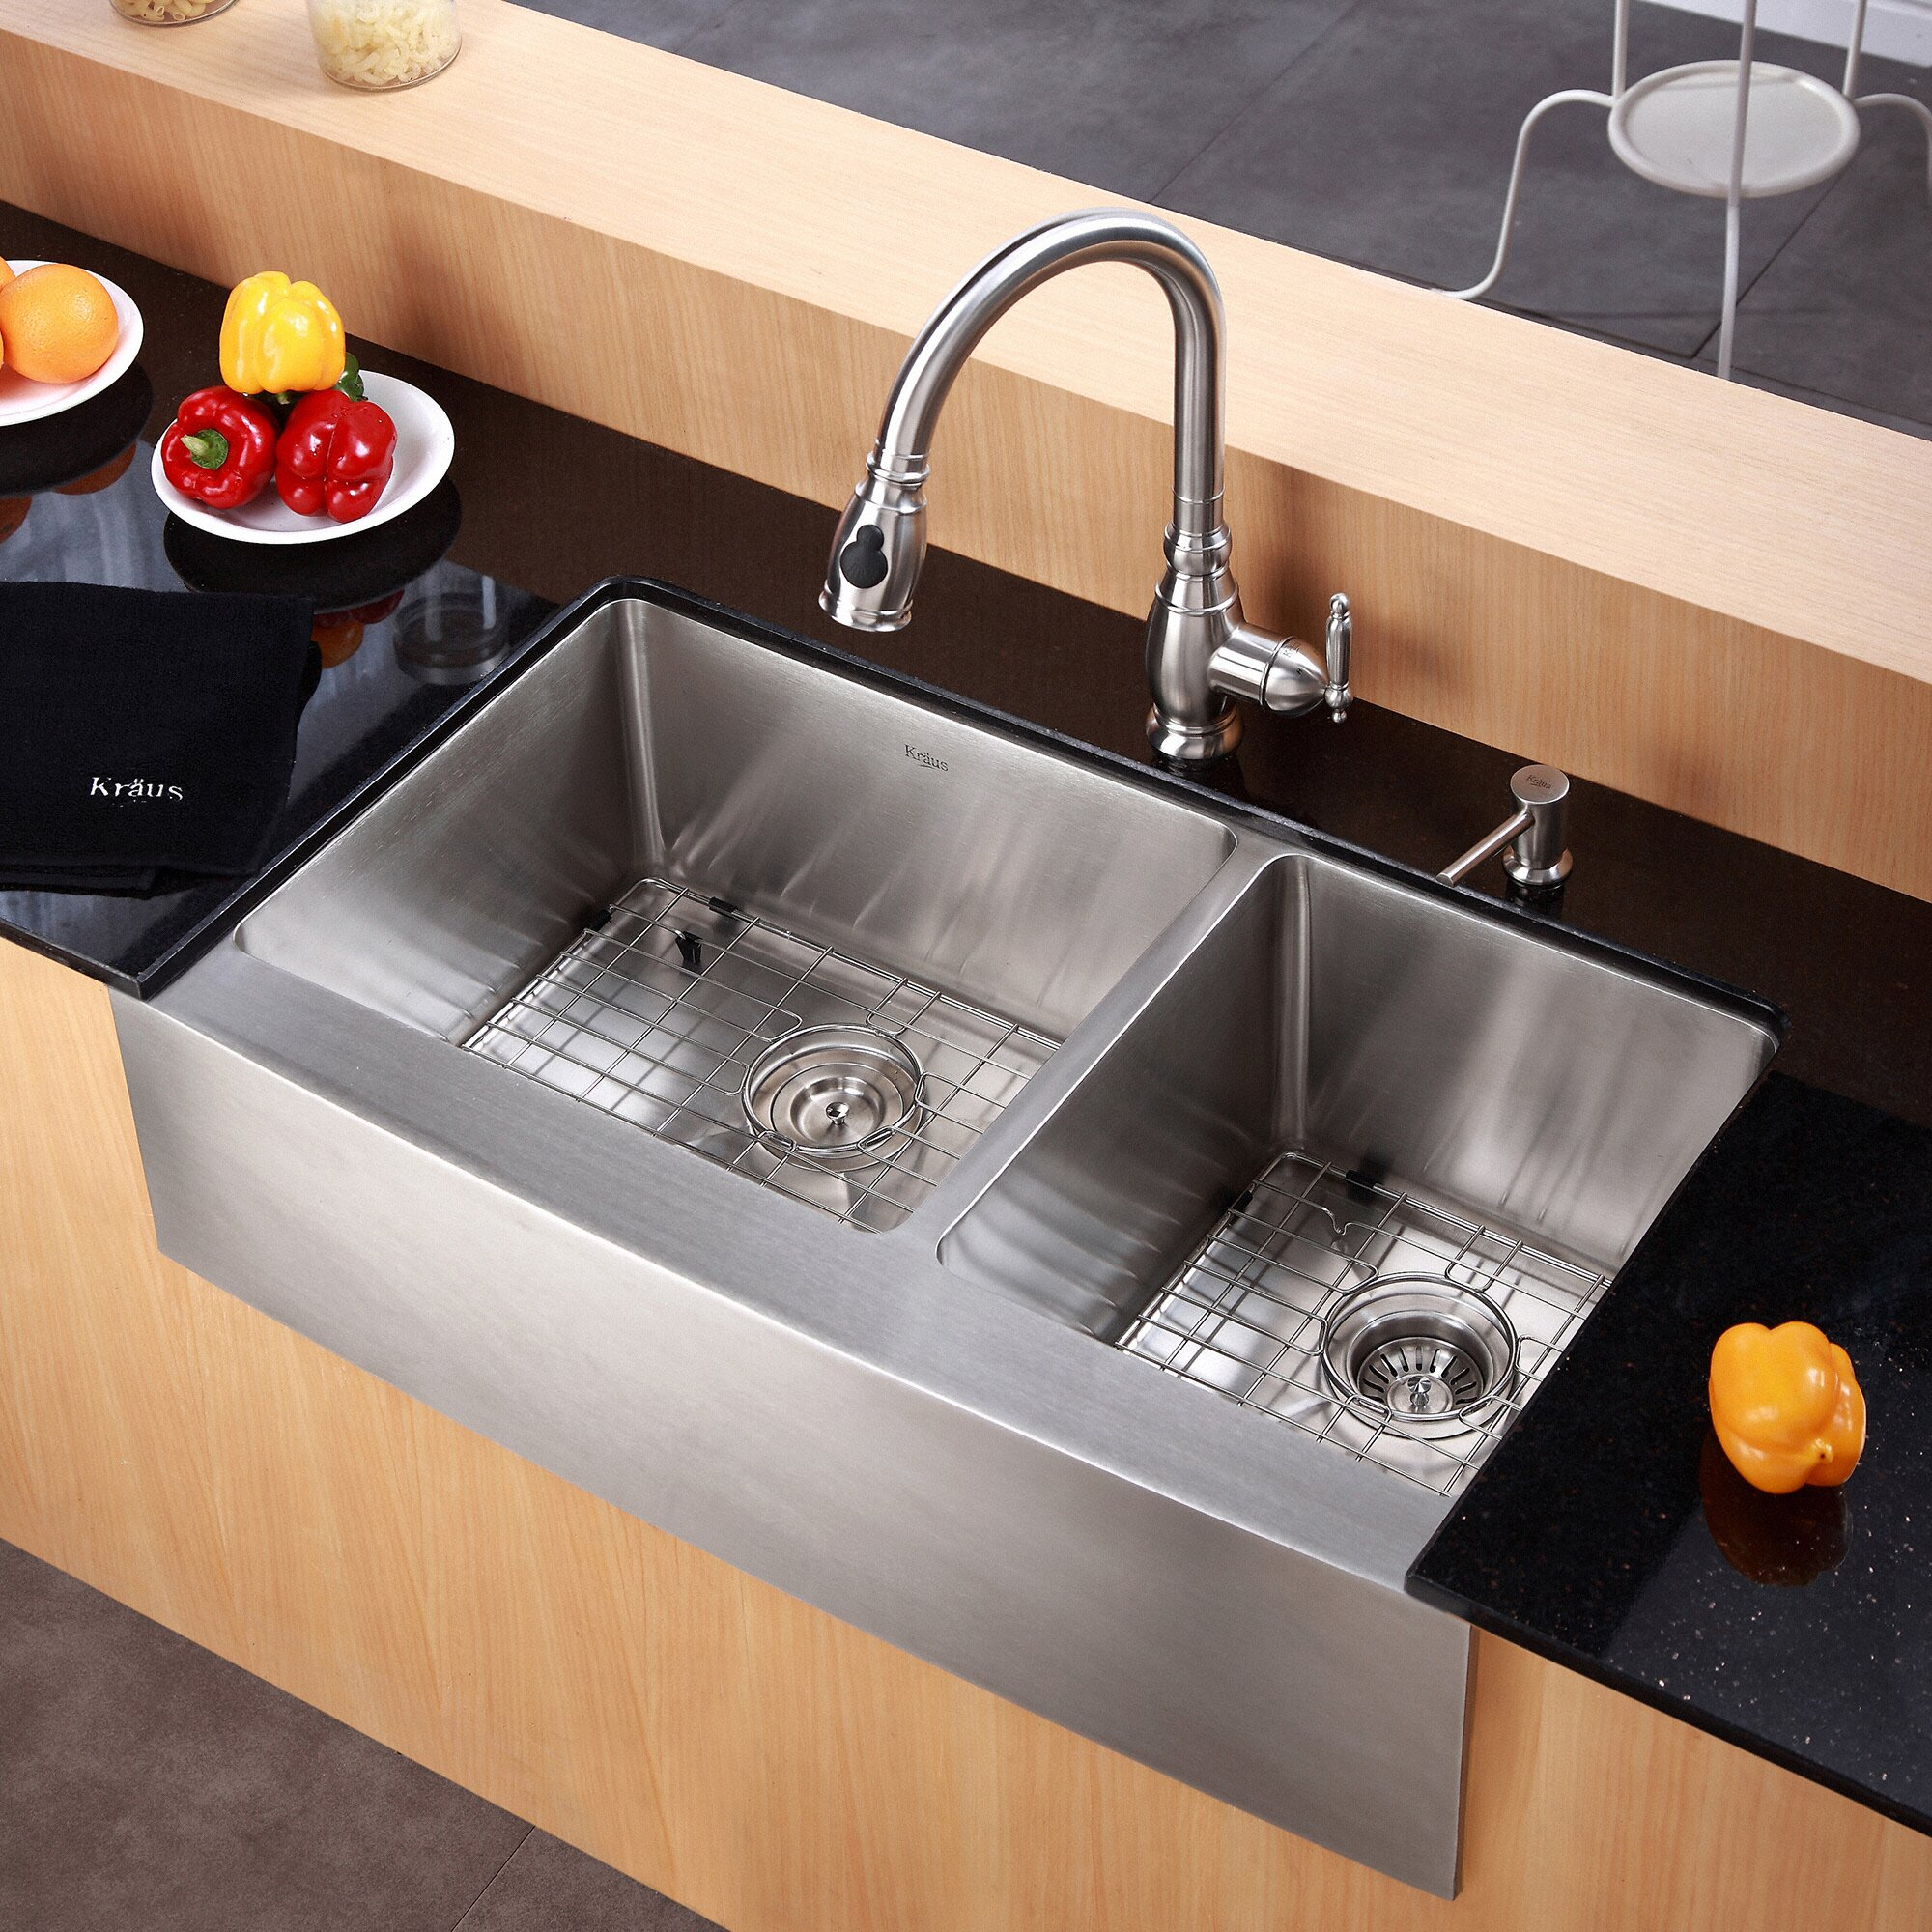 "Kitchen Sink Kraus: Kraus Farmhouse 36"" 60/40 Double Bowl Kitchen Sink"